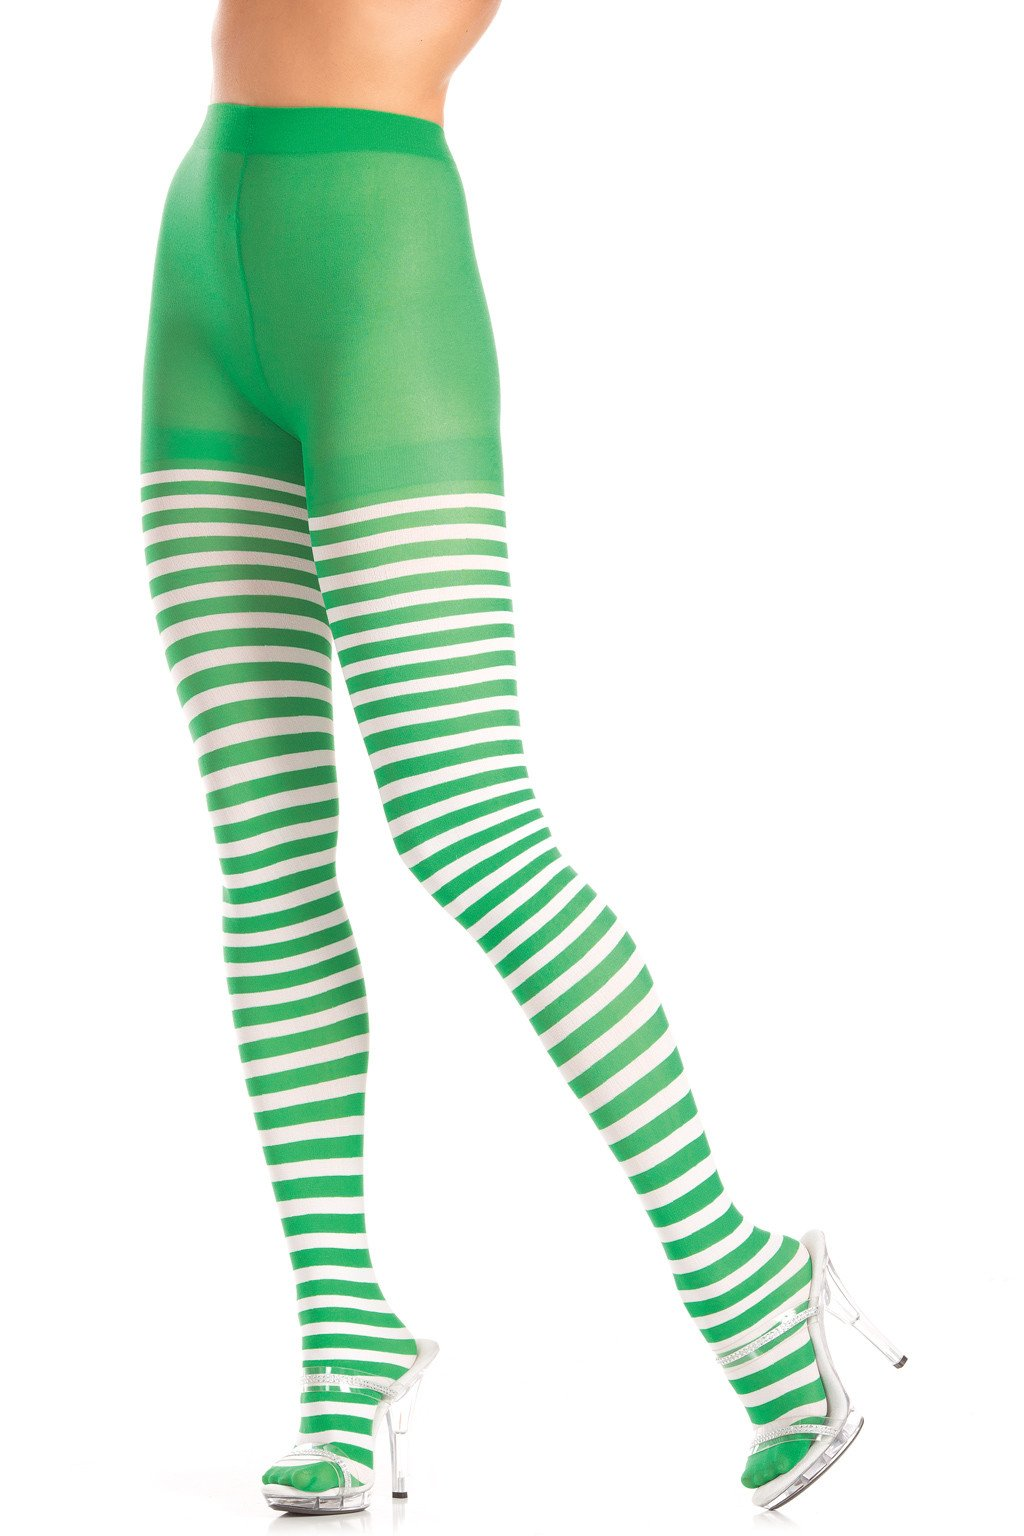 fd0584472e0 Be Wicked BW406 Striped Tights – Beverly Hills Hosiery